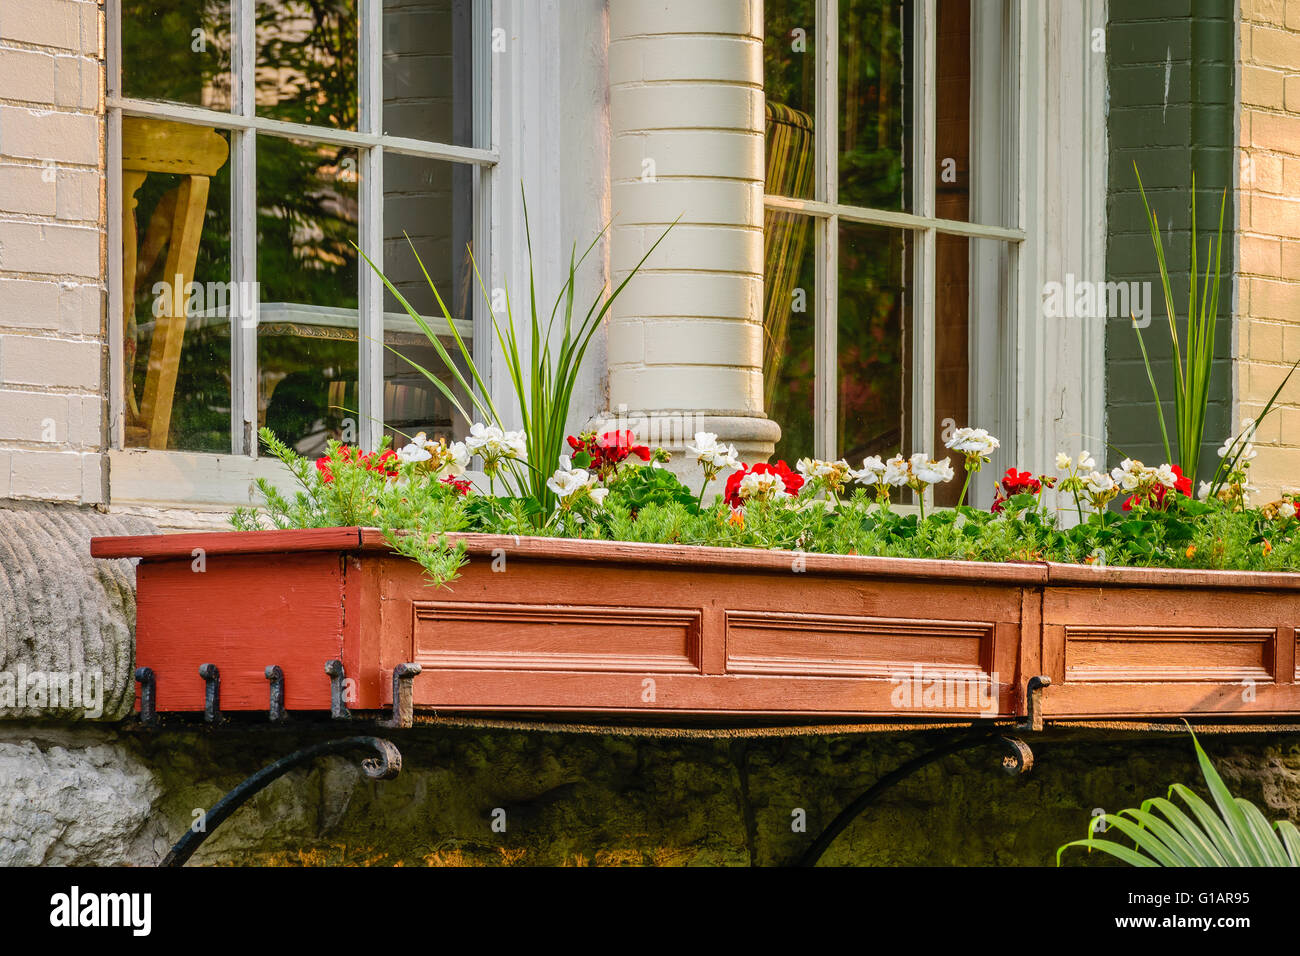 Old window box with geraniums on a stately Victorian home. - Stock Image